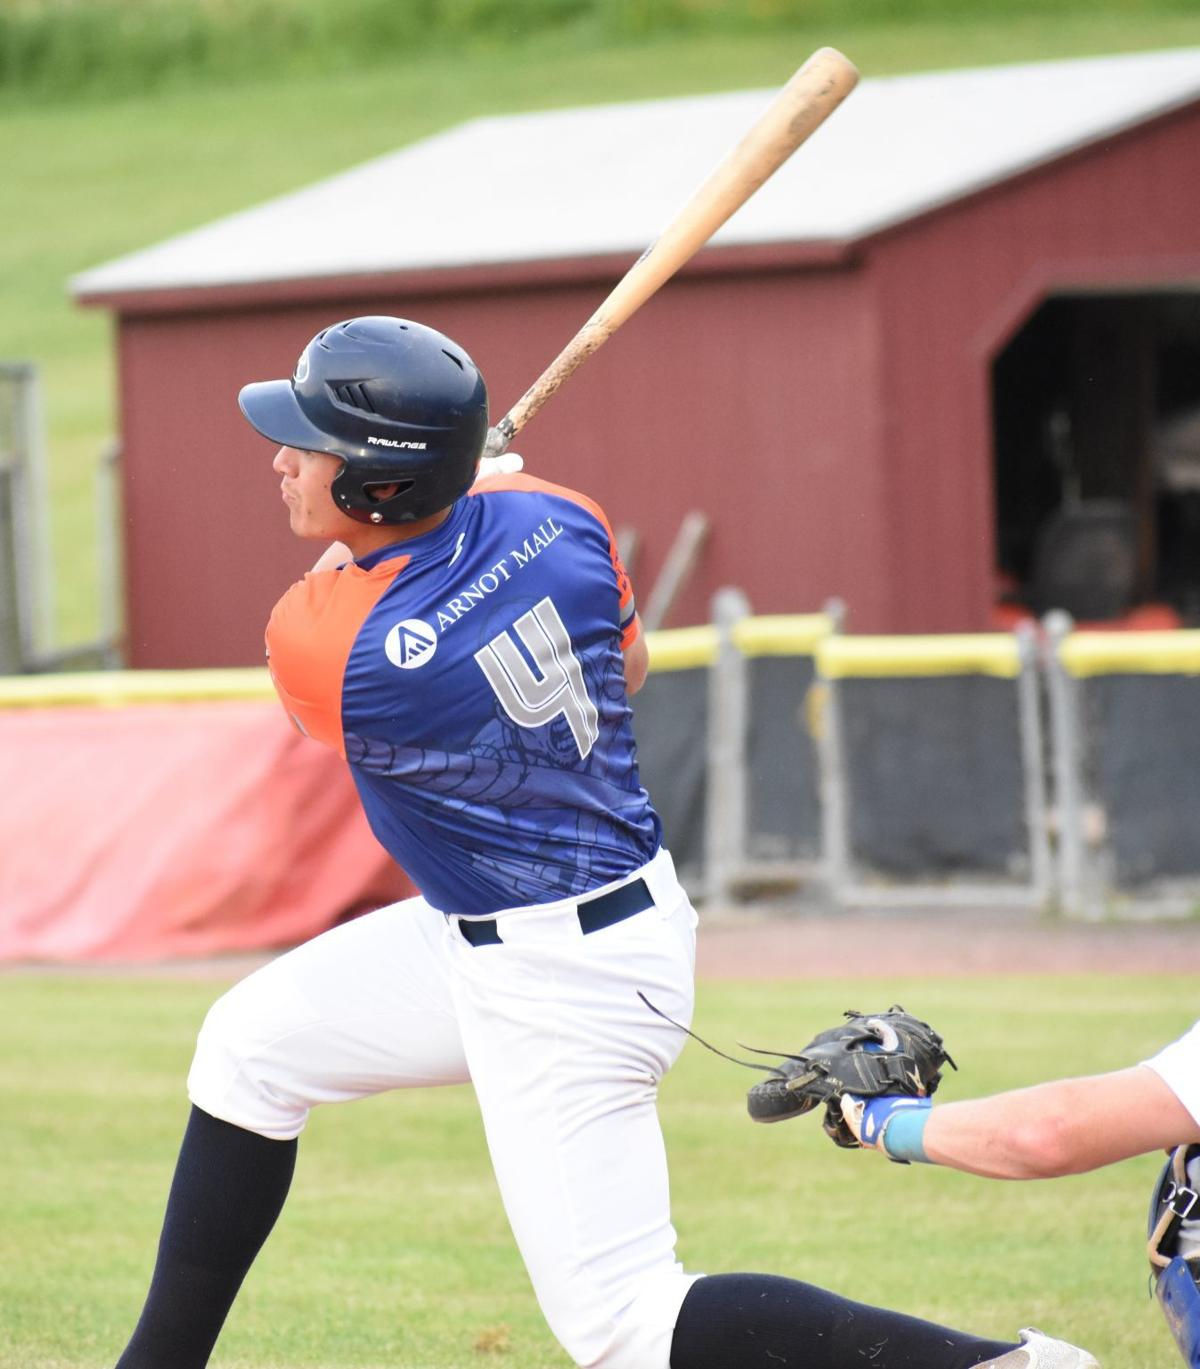 Destroyers fall to Dodgers